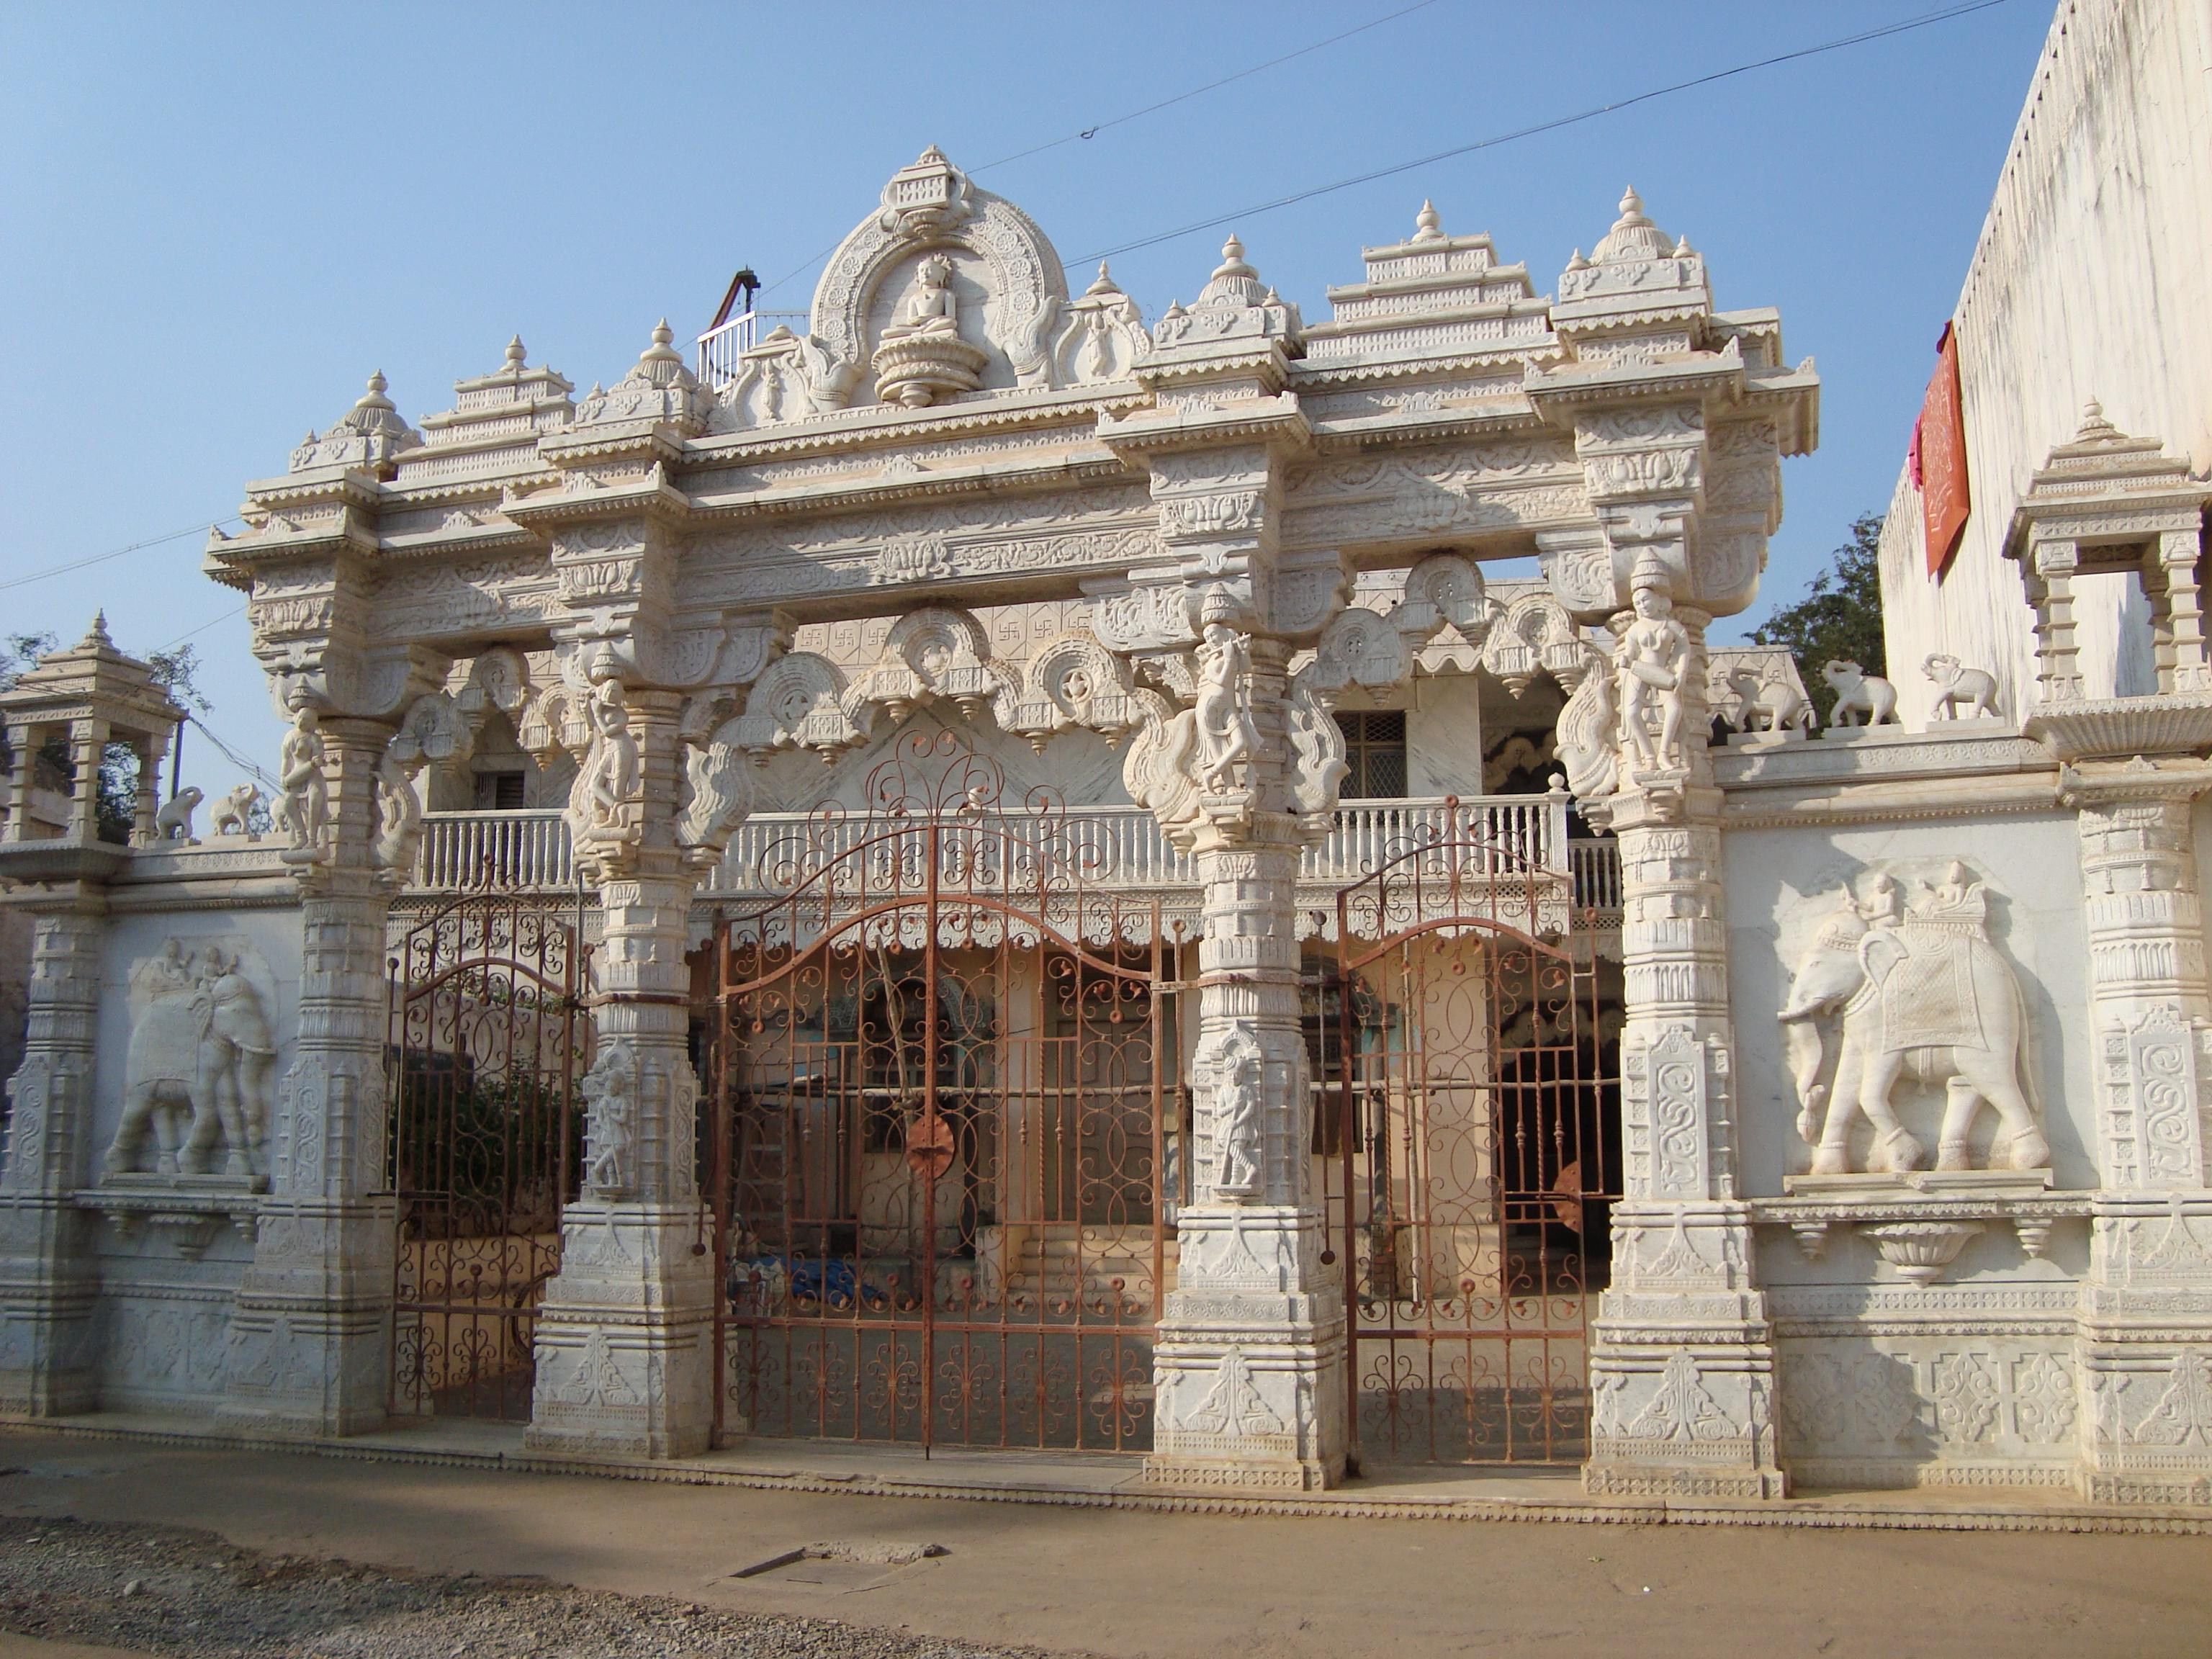 Newly built Jain temple at Lakshmeshwara, North Karnataka